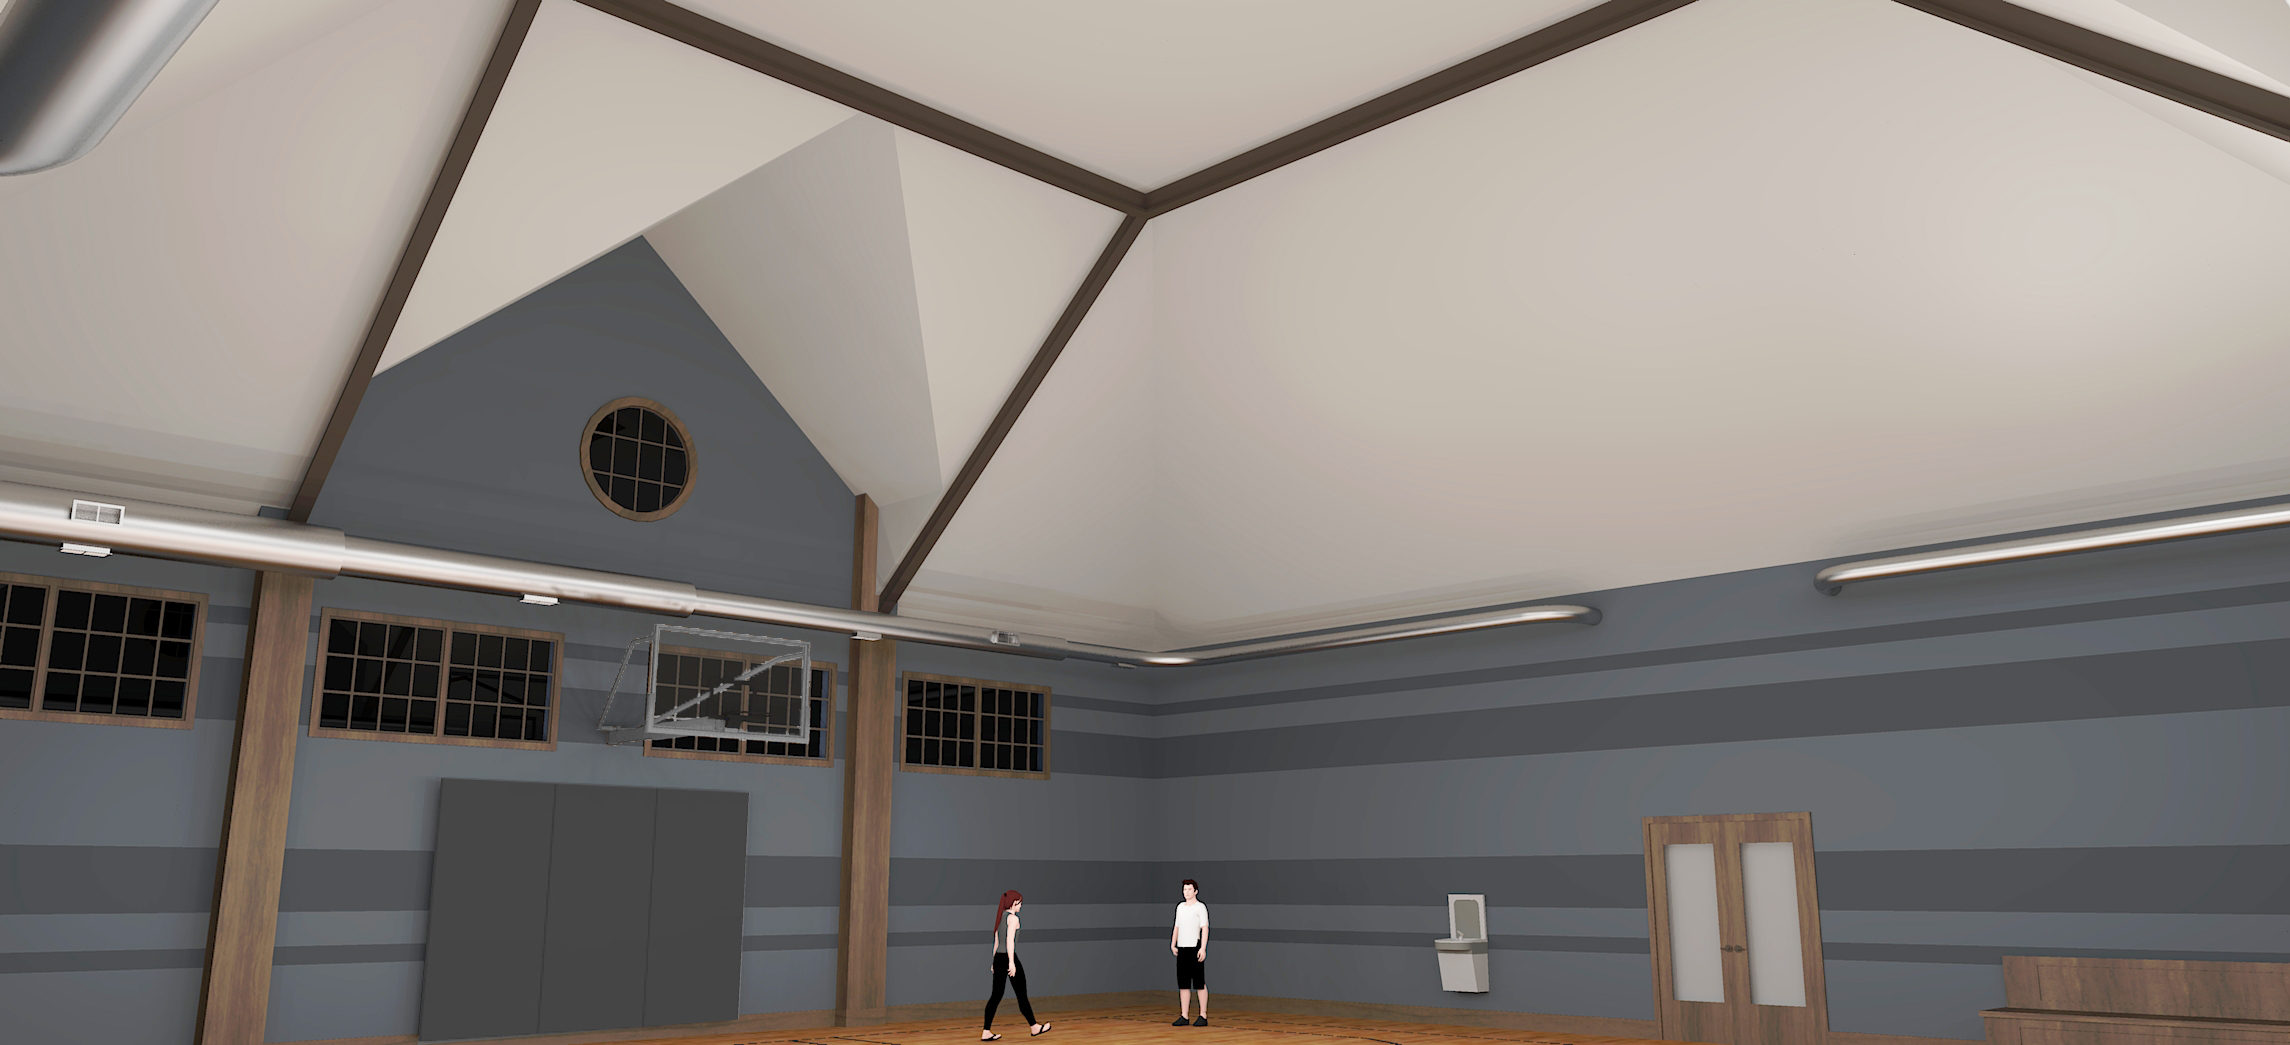 Initial Sketchup Concept Rendering #1 for Basketball Court